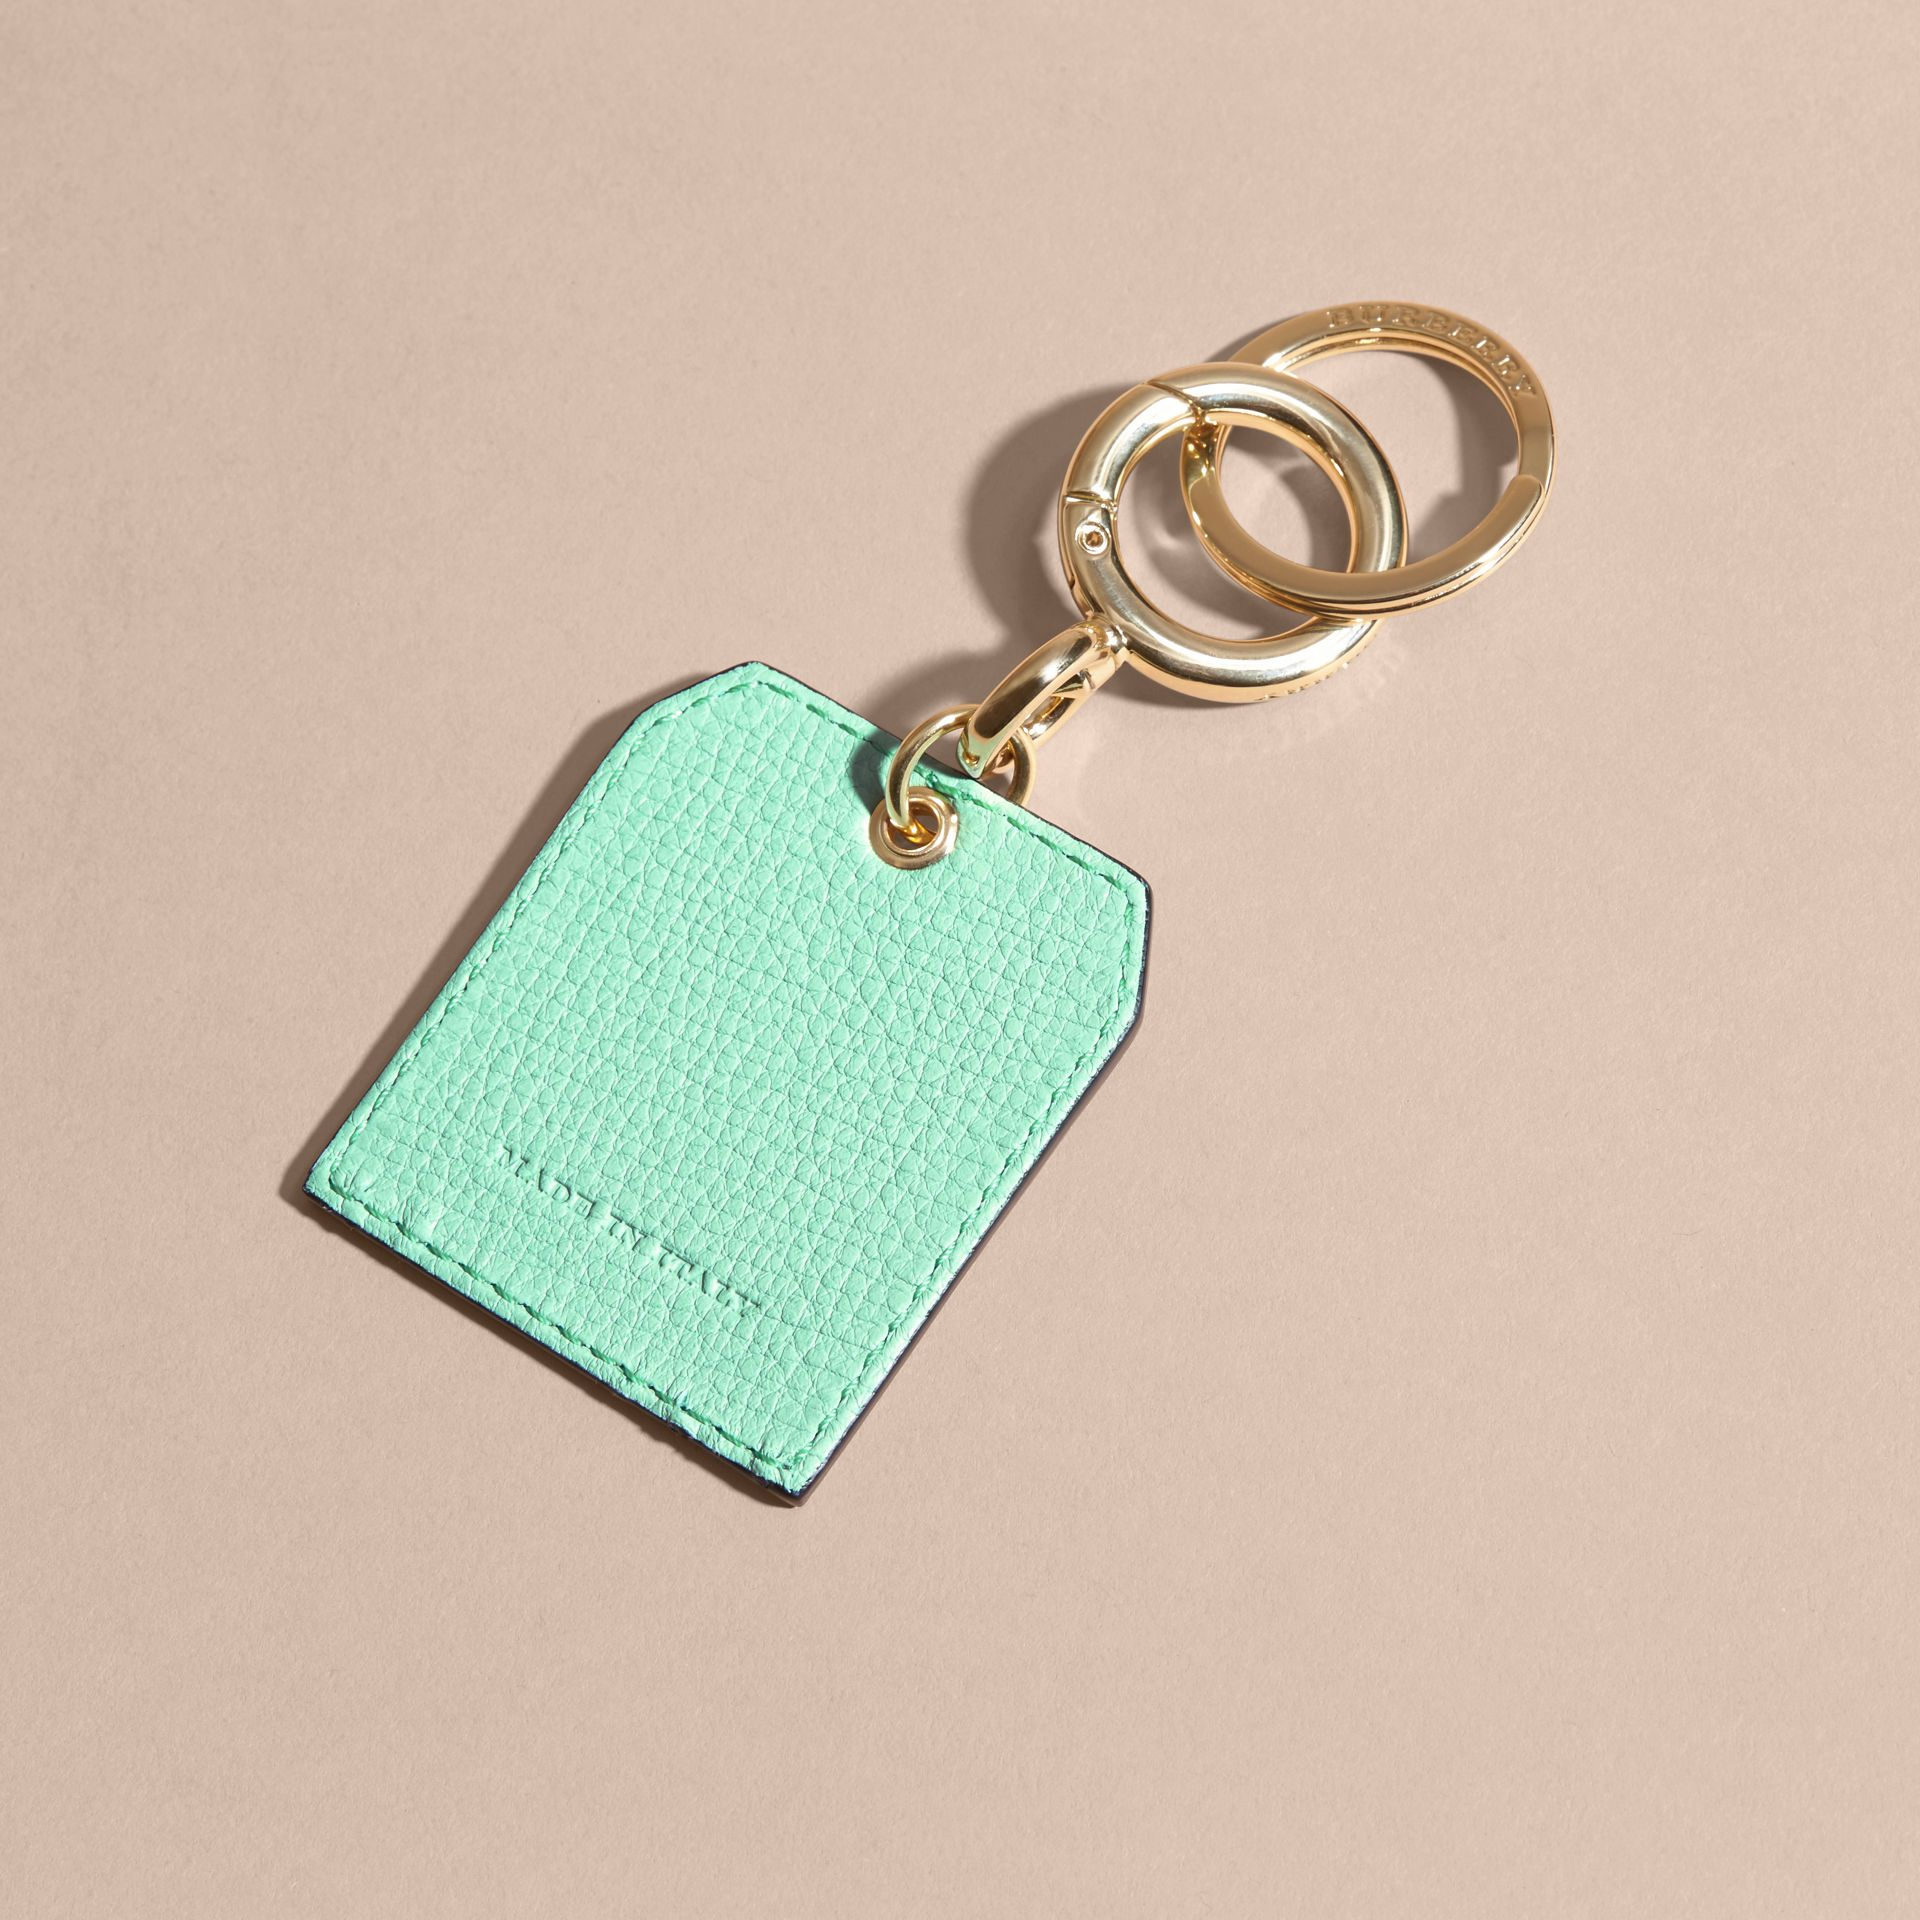 Grainy Leather Key Charm in Light Mint - Women | Burberry - gallery image 4